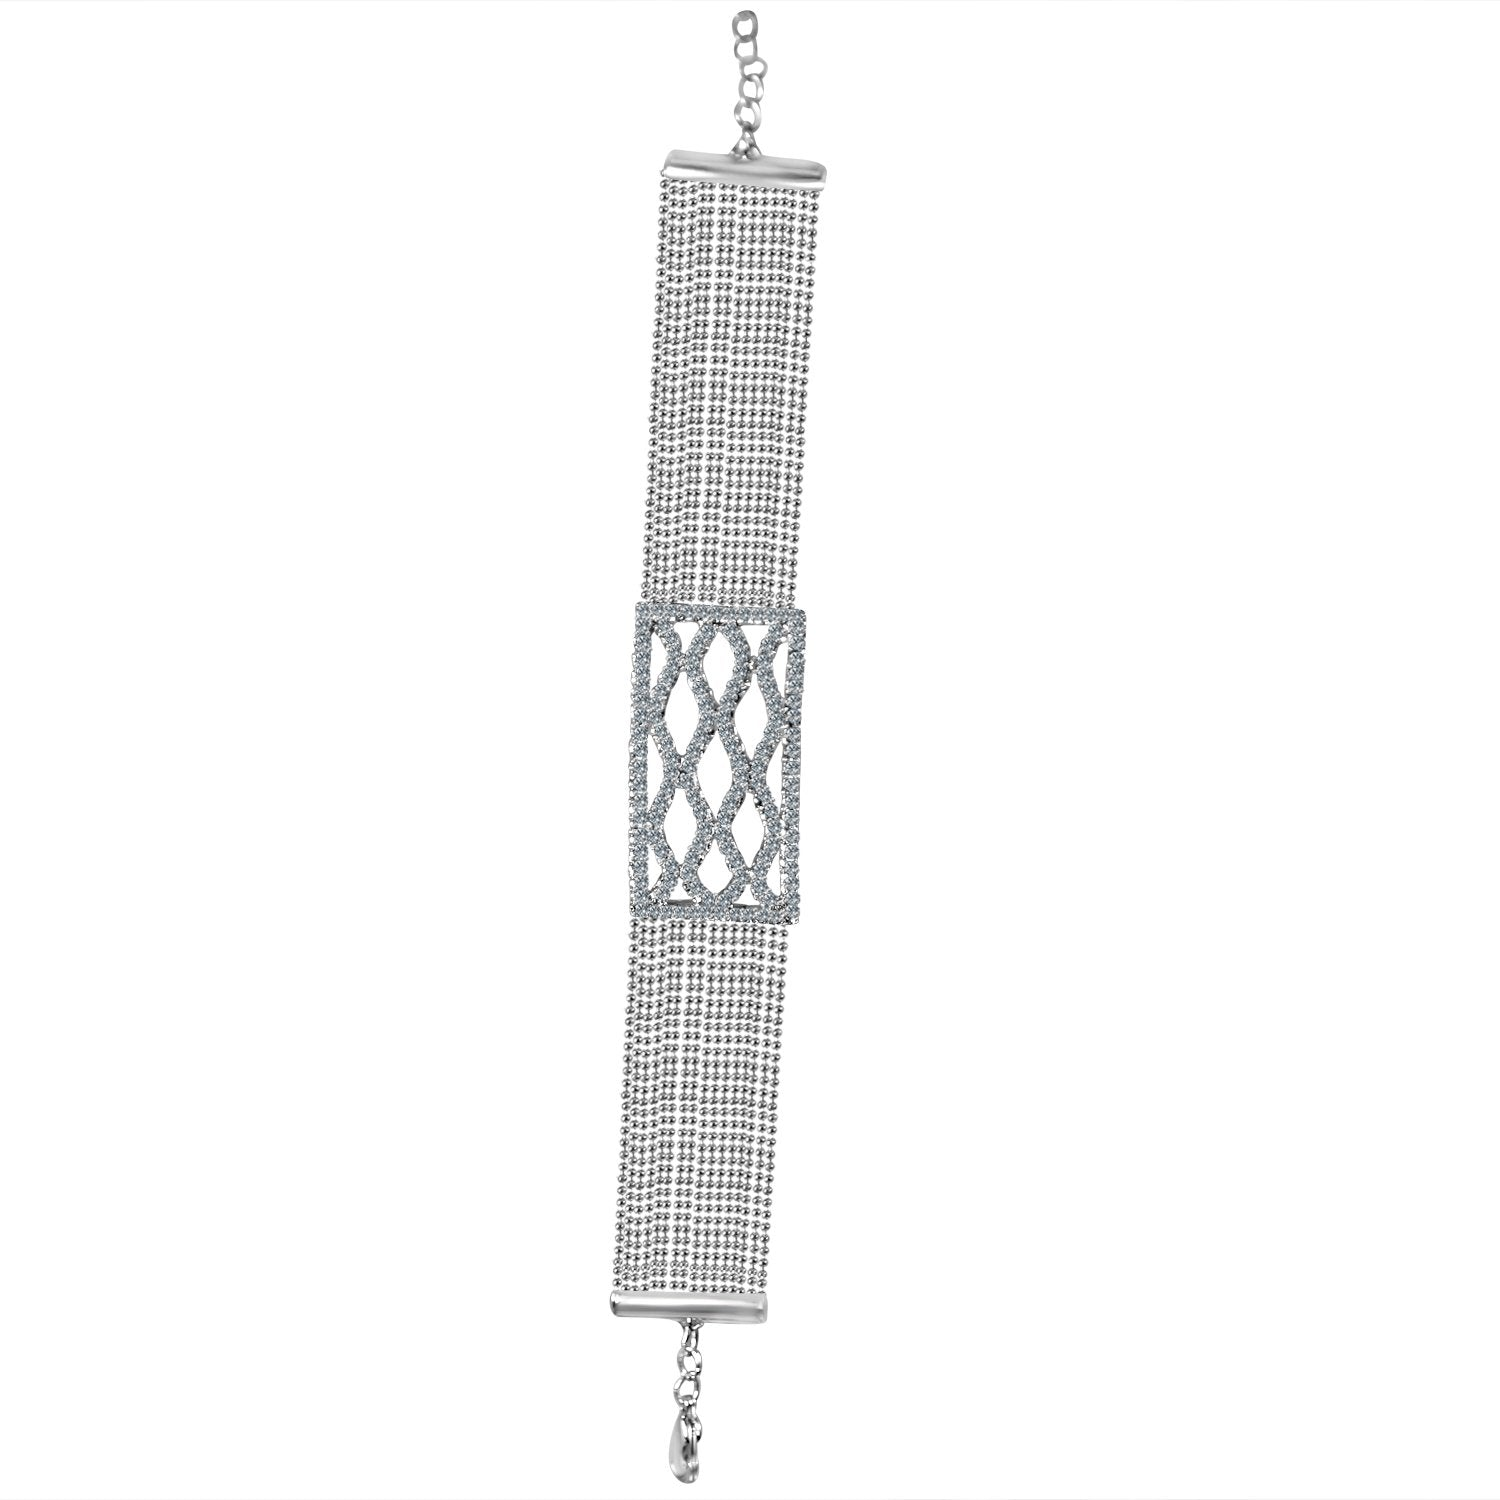 FINE CRYSTAL RHINESTONES CRISS-CROSS CENTER ON MULTI-BEADS CHAIN STRANDS CHOKER NECKLACE 700C719